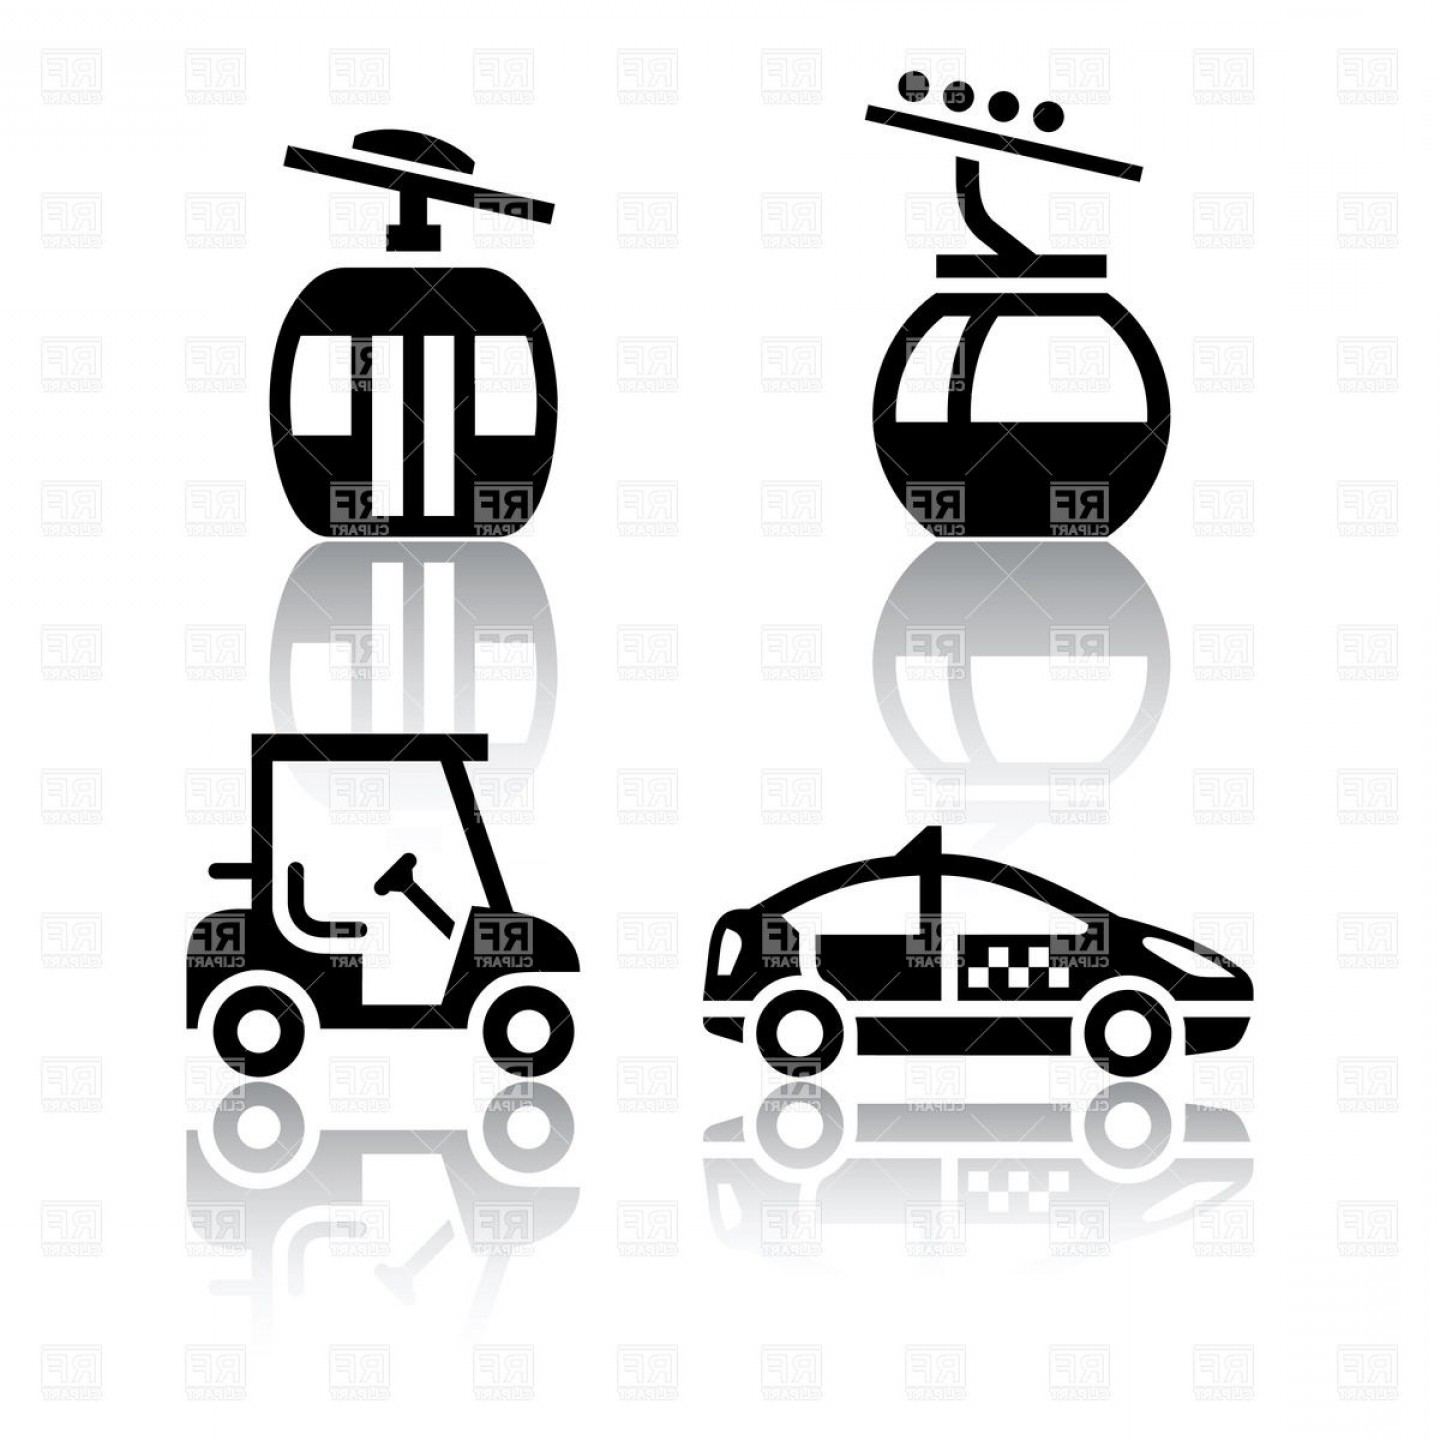 Excellent Overhead Cable Car Taxi And Golf Cart Icons Vector.